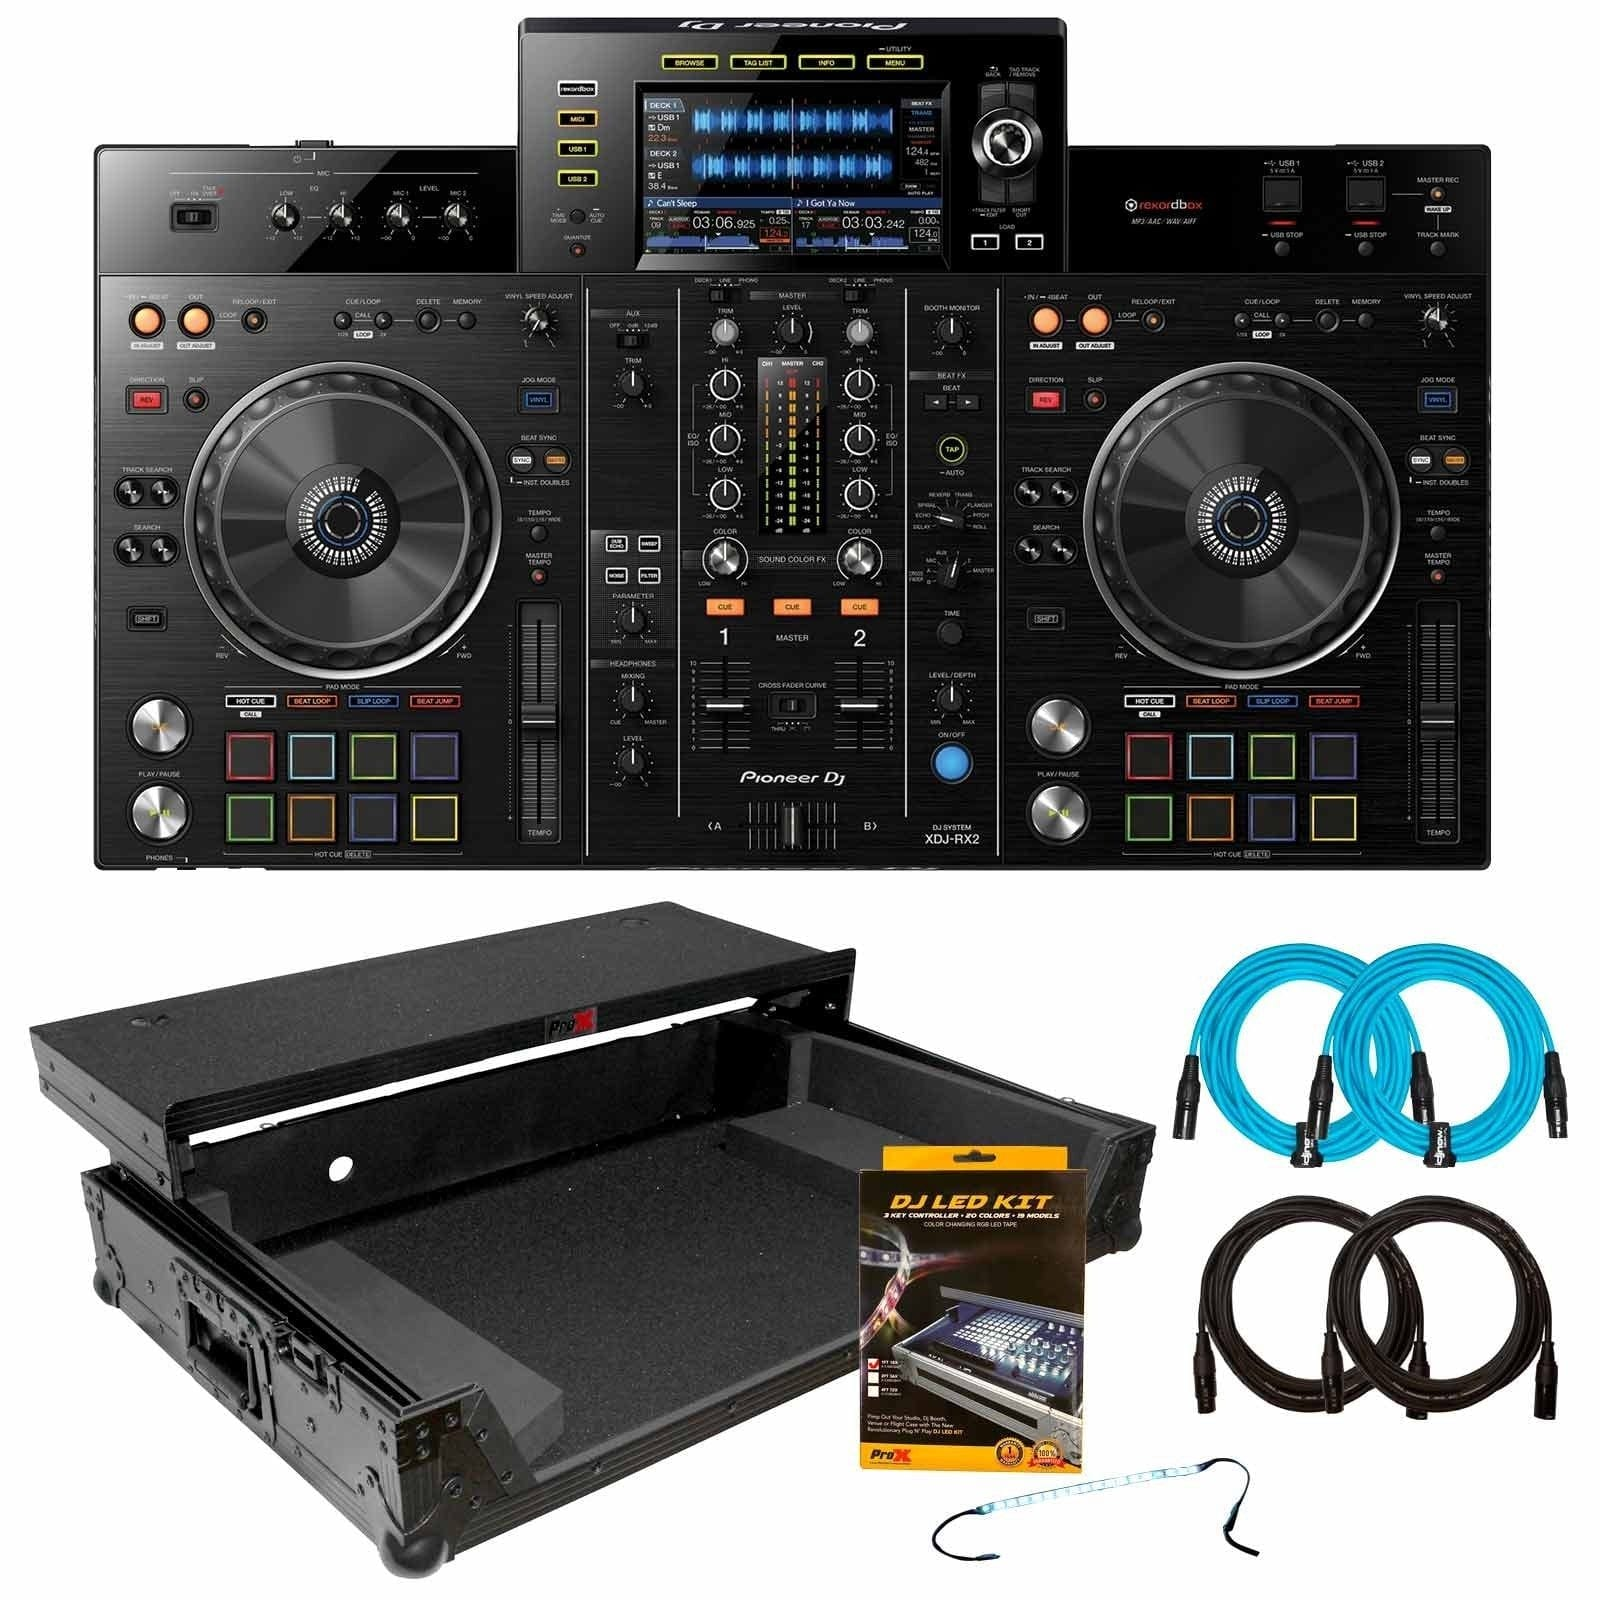 pioneer-dj-xdj-rx2-2-channel-professional-rekordbox-dj-system-with-black-on-black-flight-case-package-b99